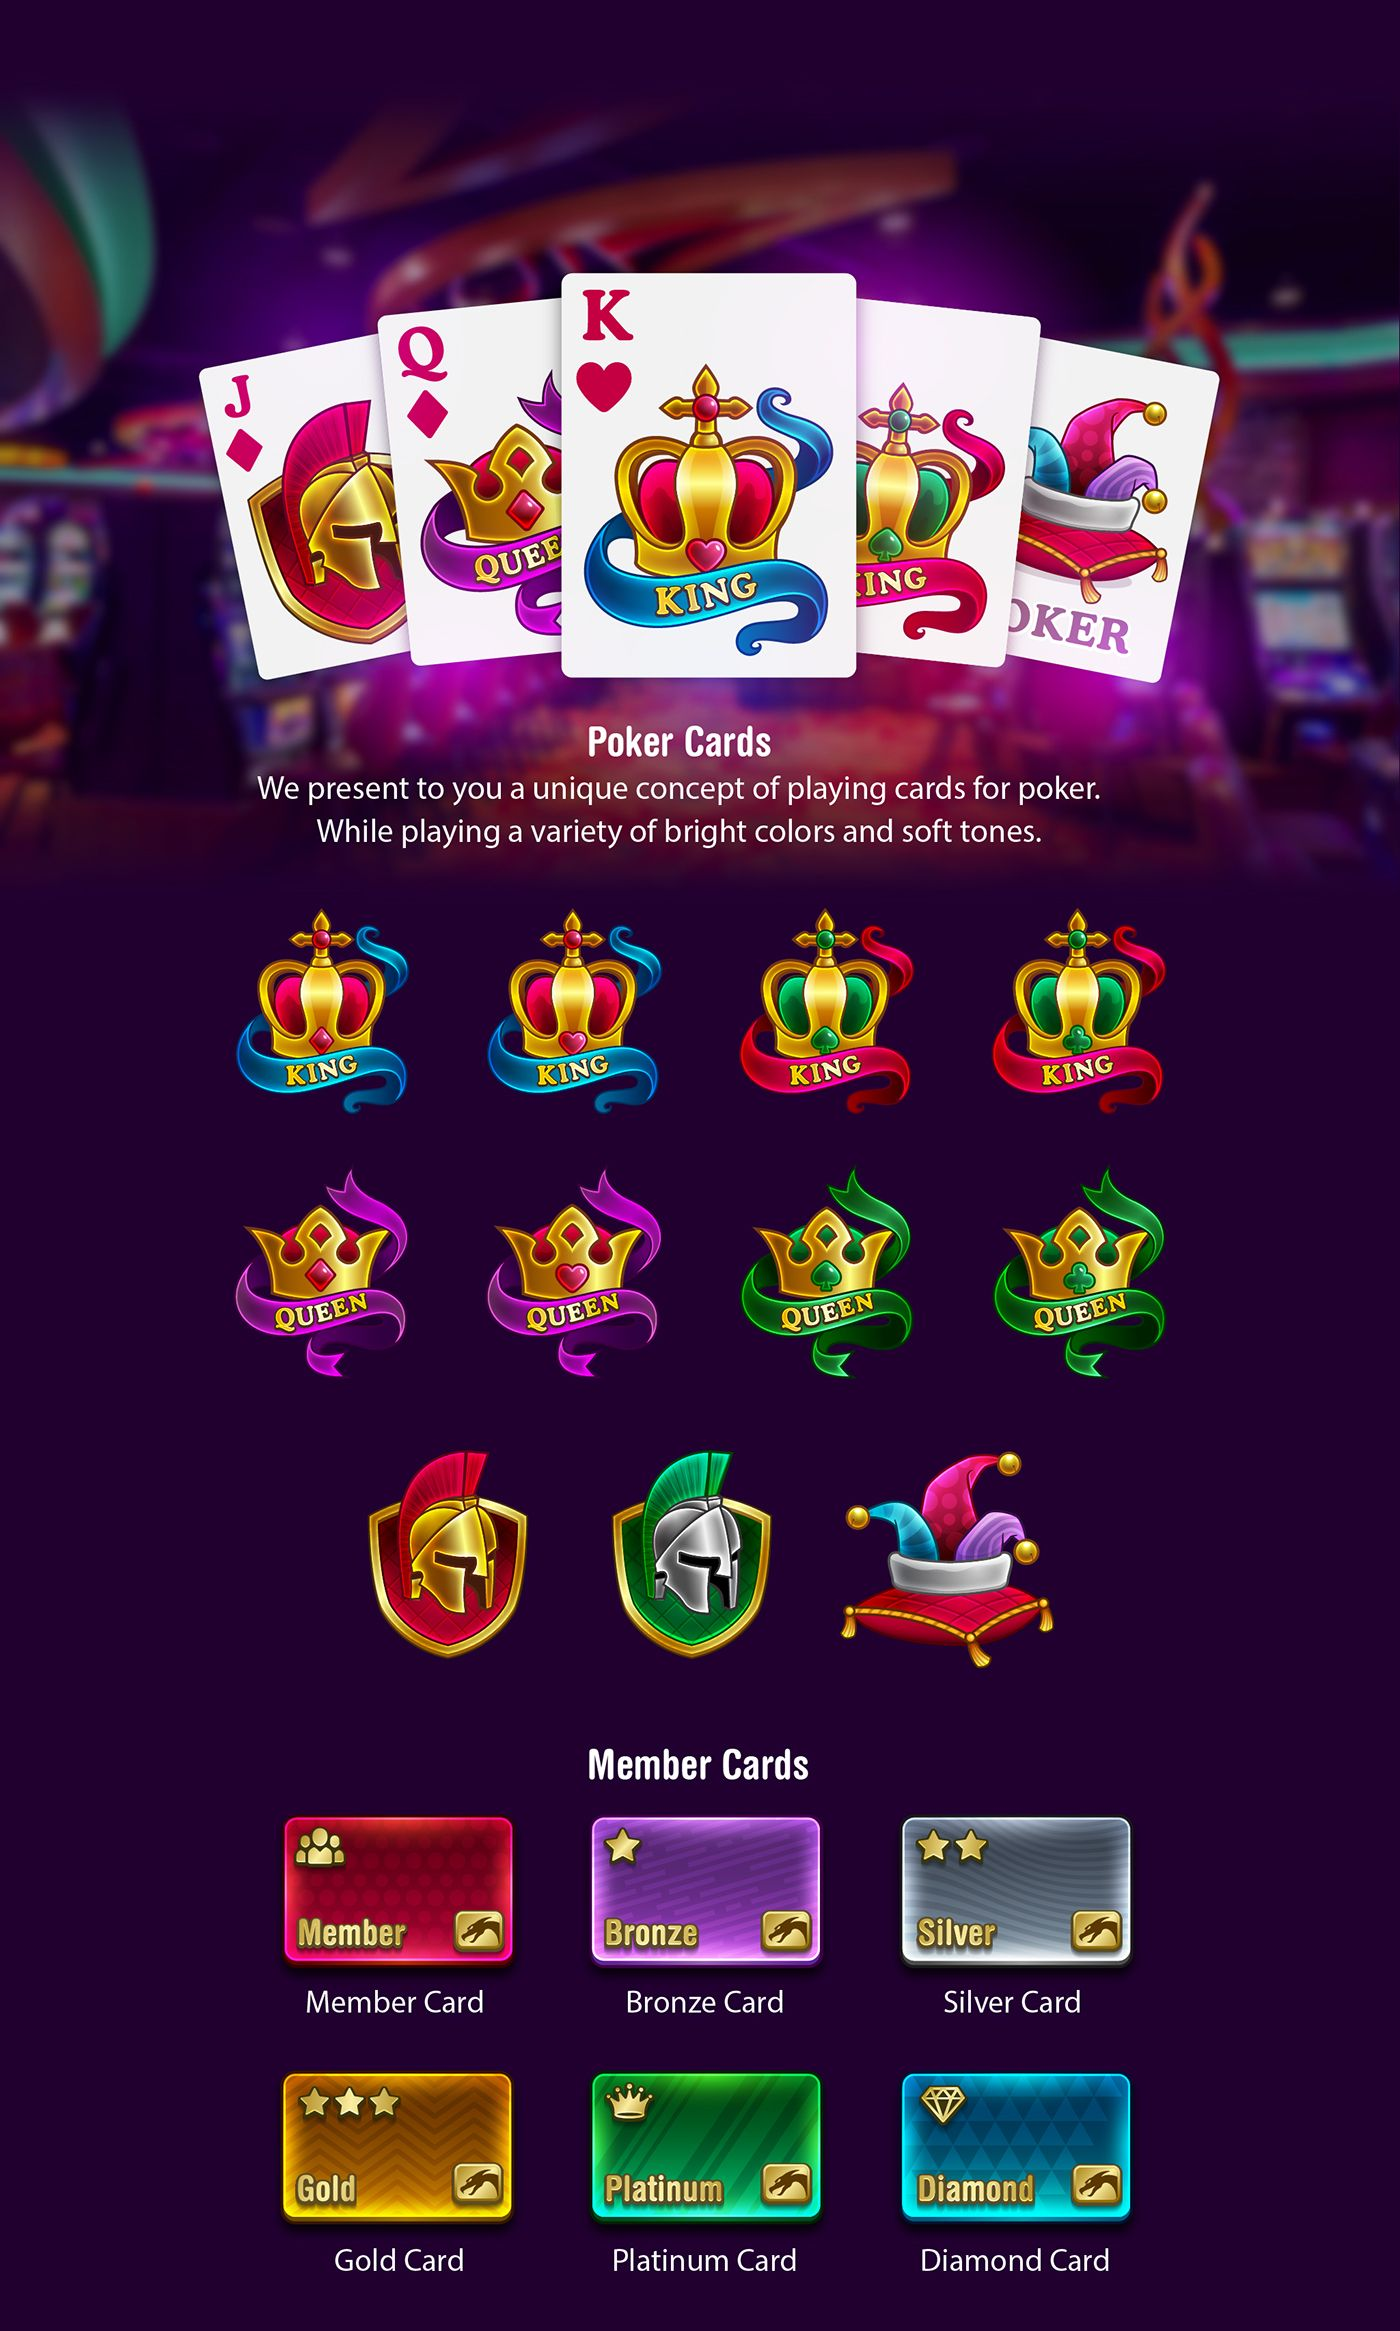 video pokertm-poker casino game